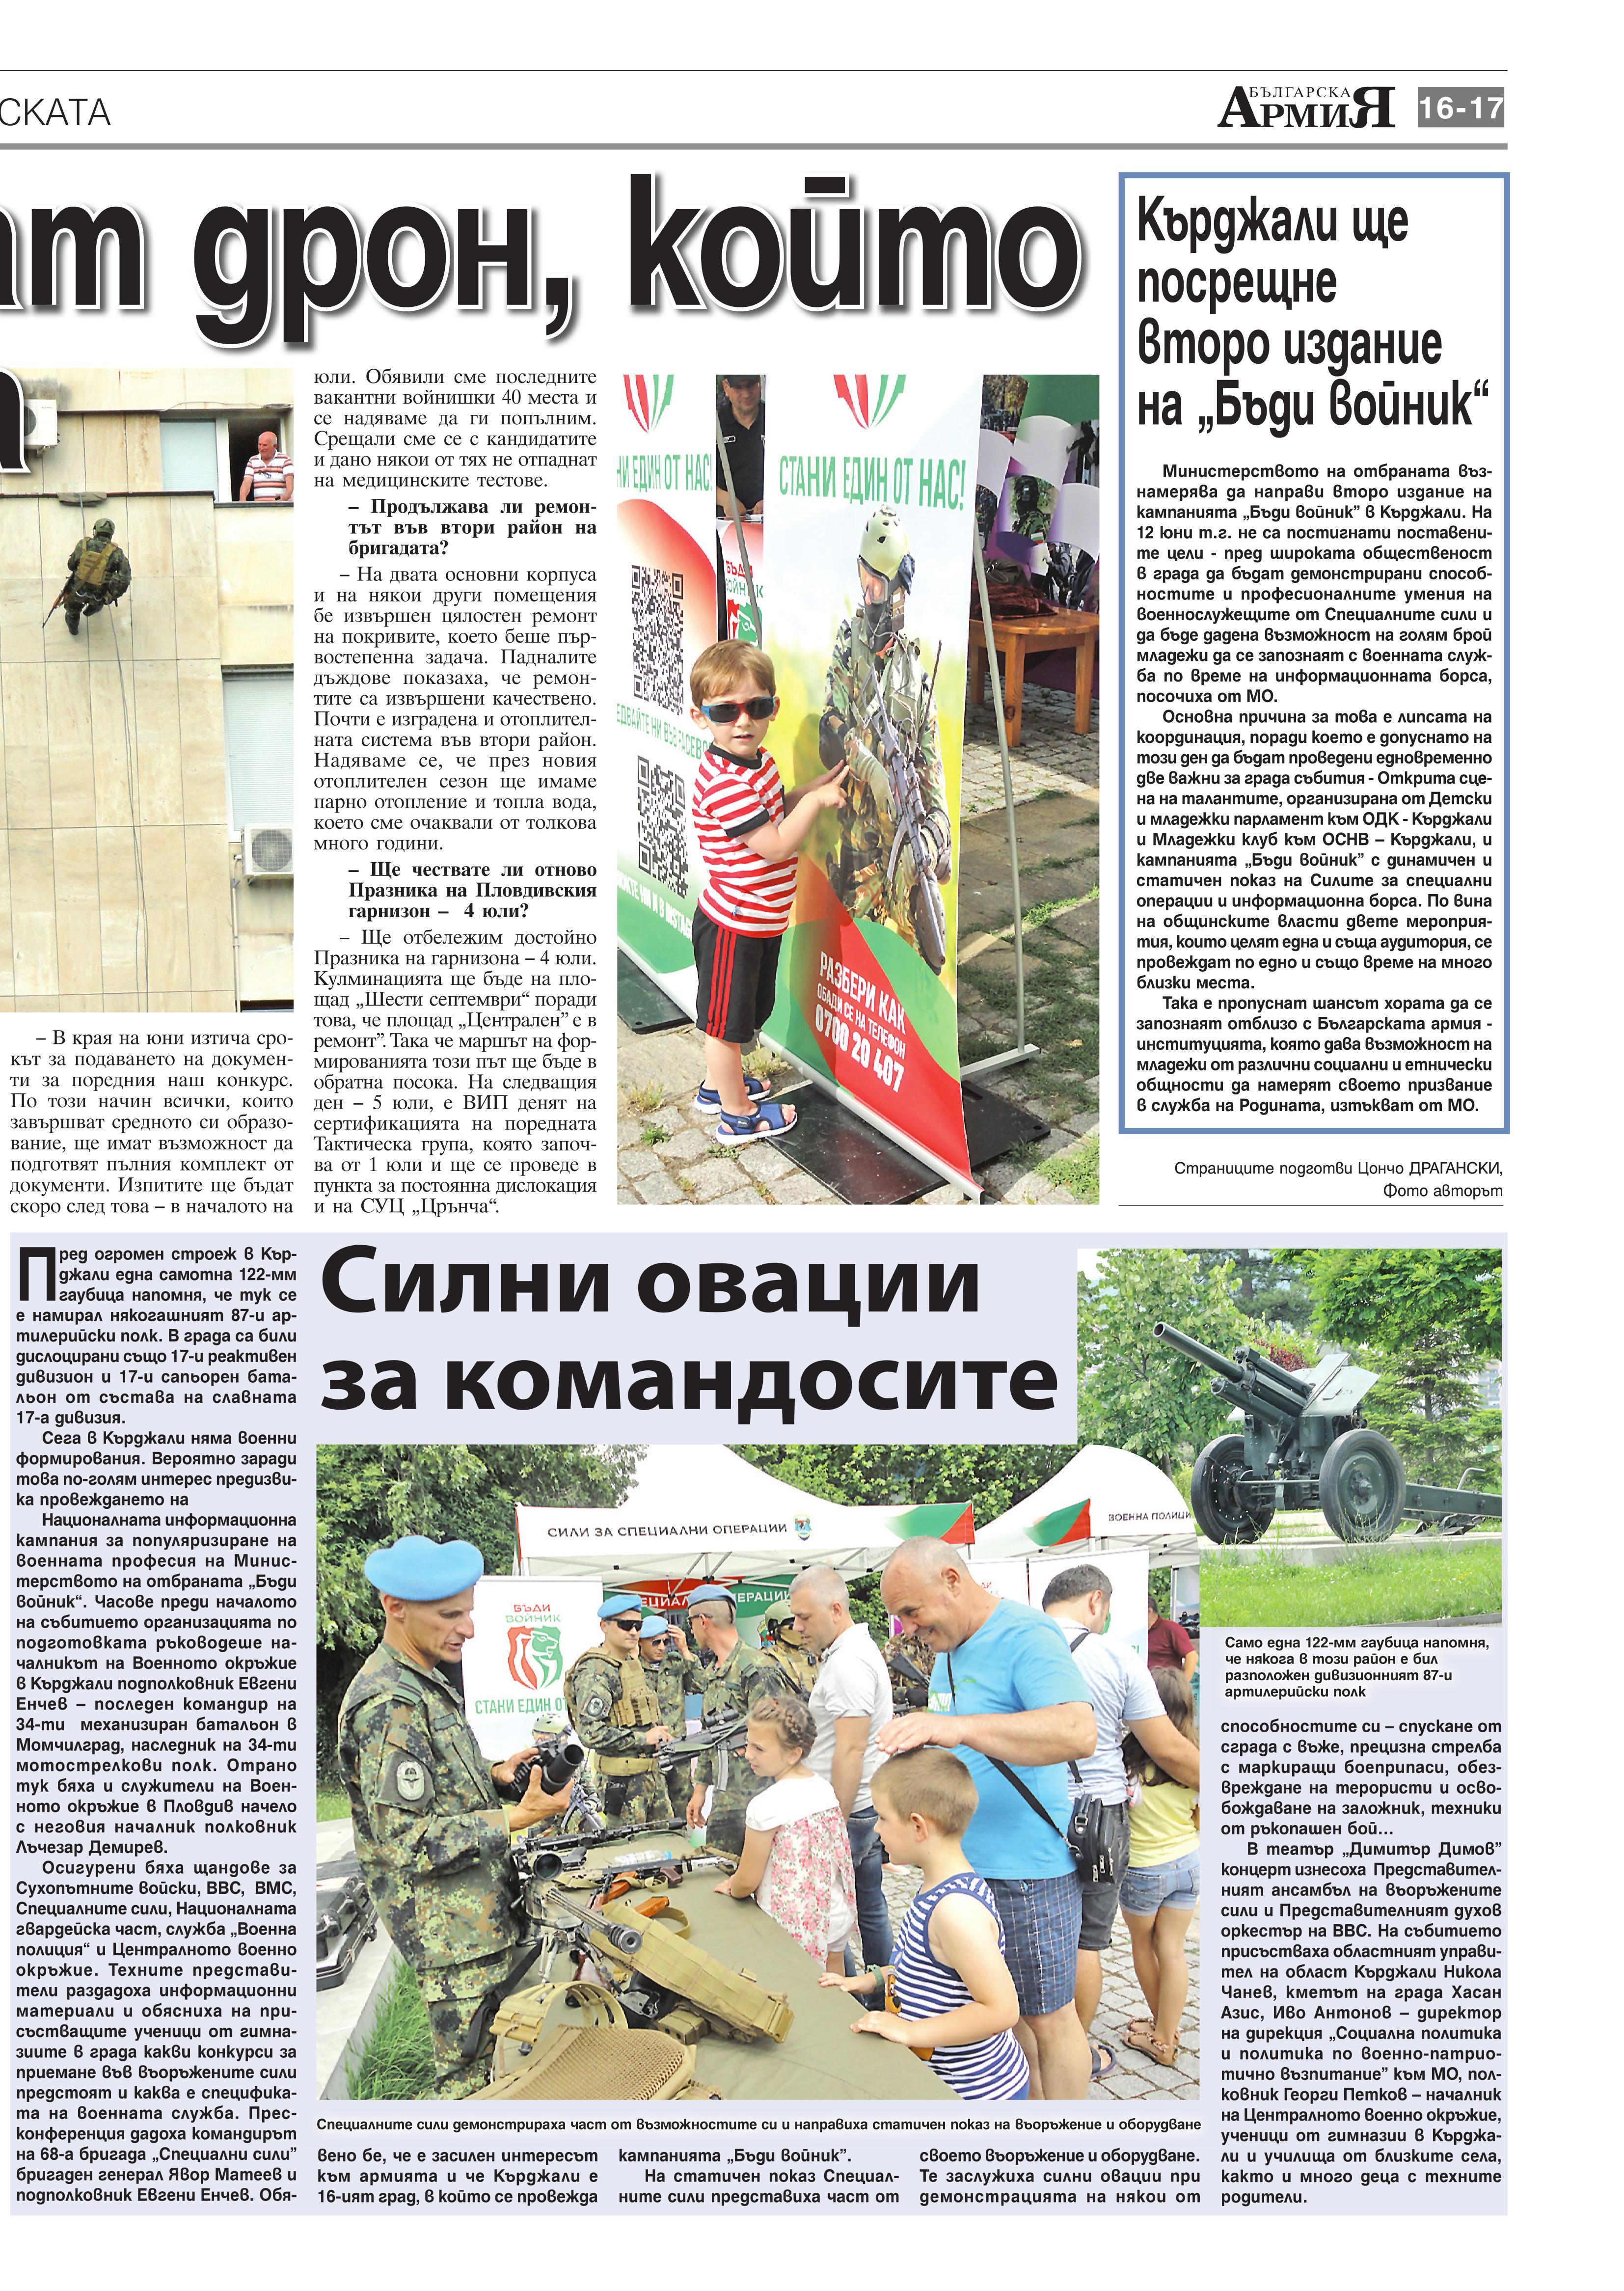 https://www.armymedia.bg/wp-content/uploads/2015/06/17.page1_-100.jpg